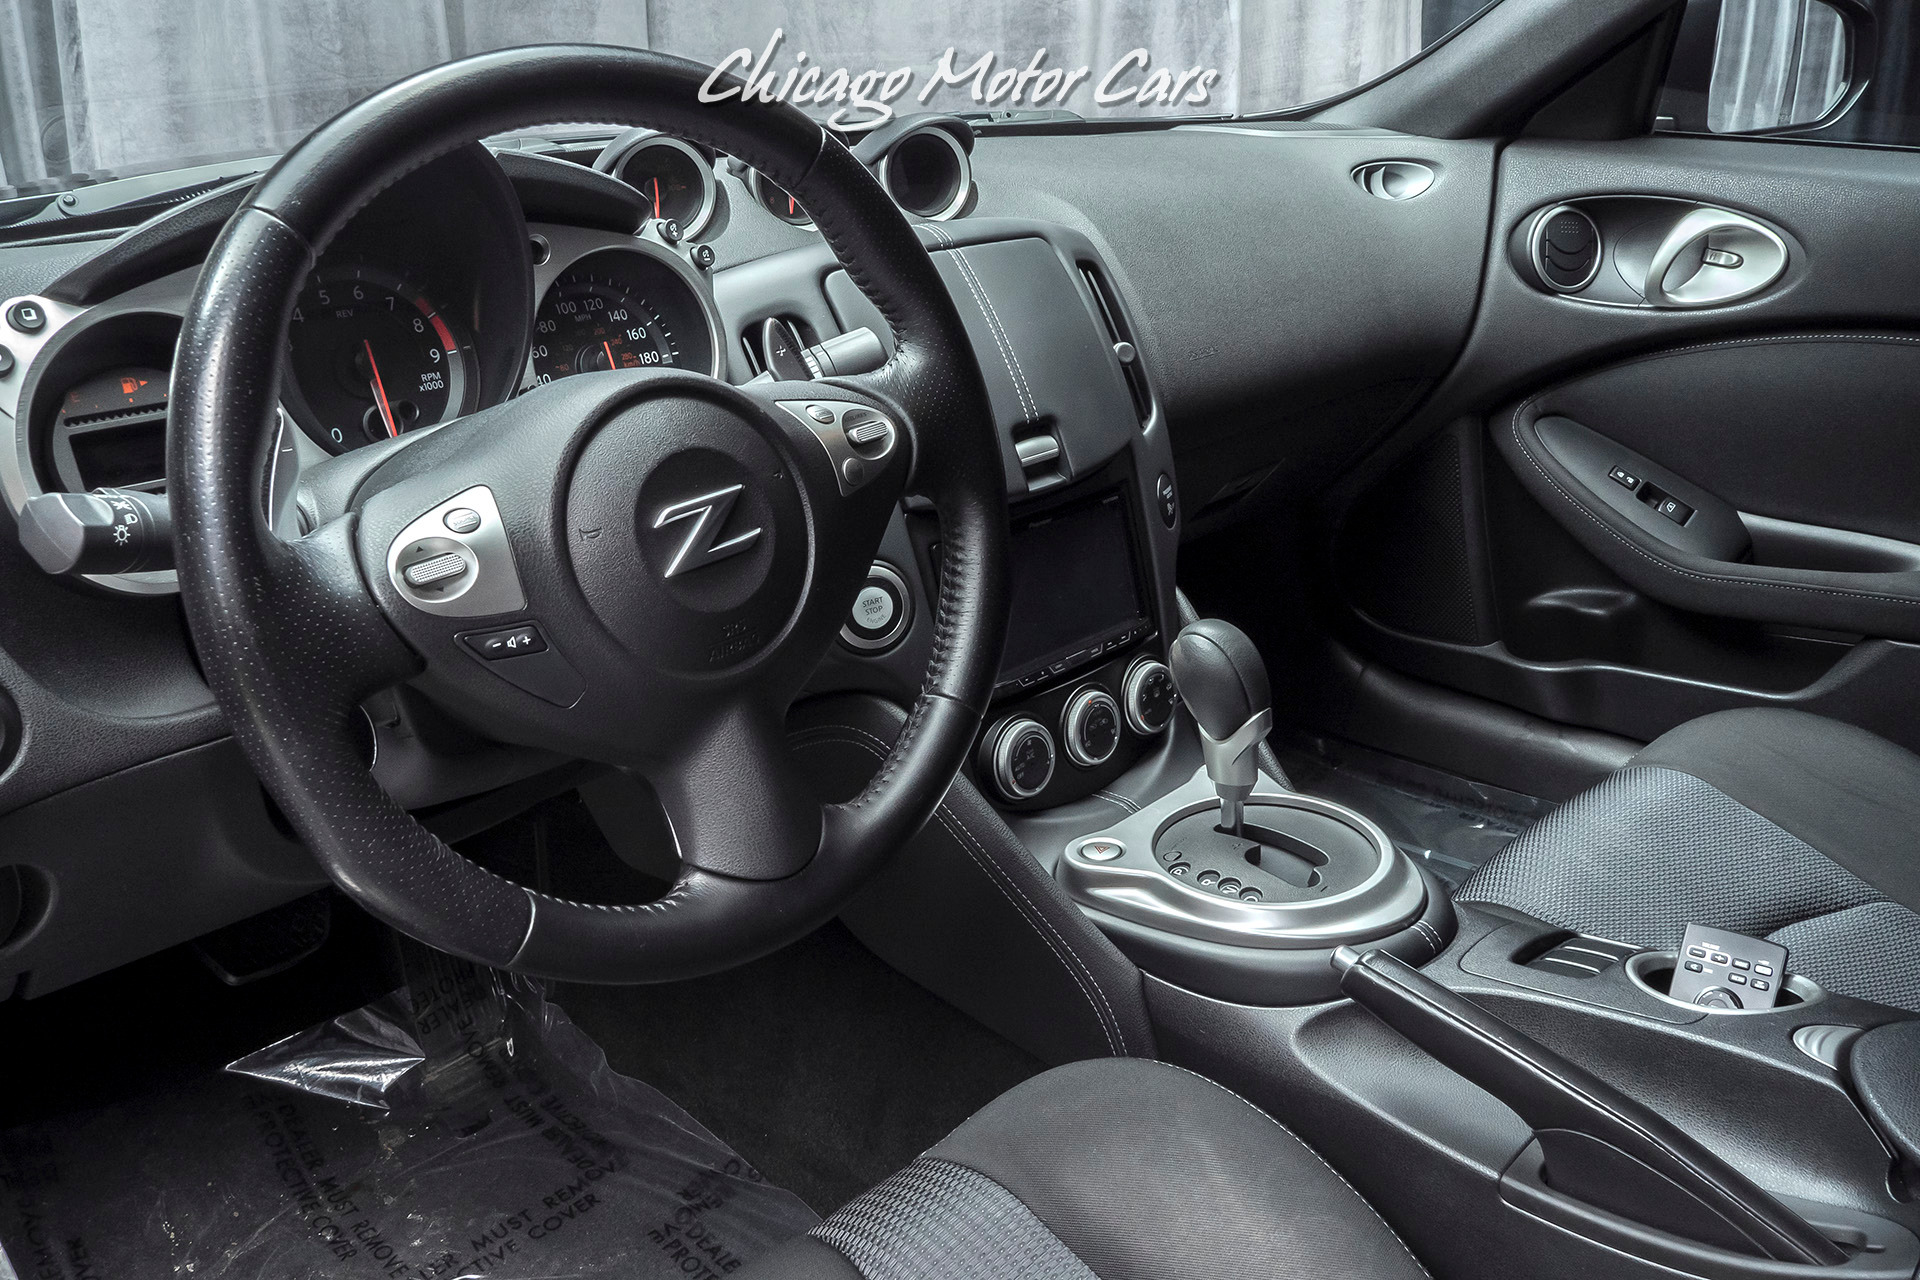 used 2013 nissan 370z coupe upgraded 19 inch wheels and headunit for sale 18 800 chicago motor cars stock 15968a used 2013 nissan 370z coupe upgraded 19